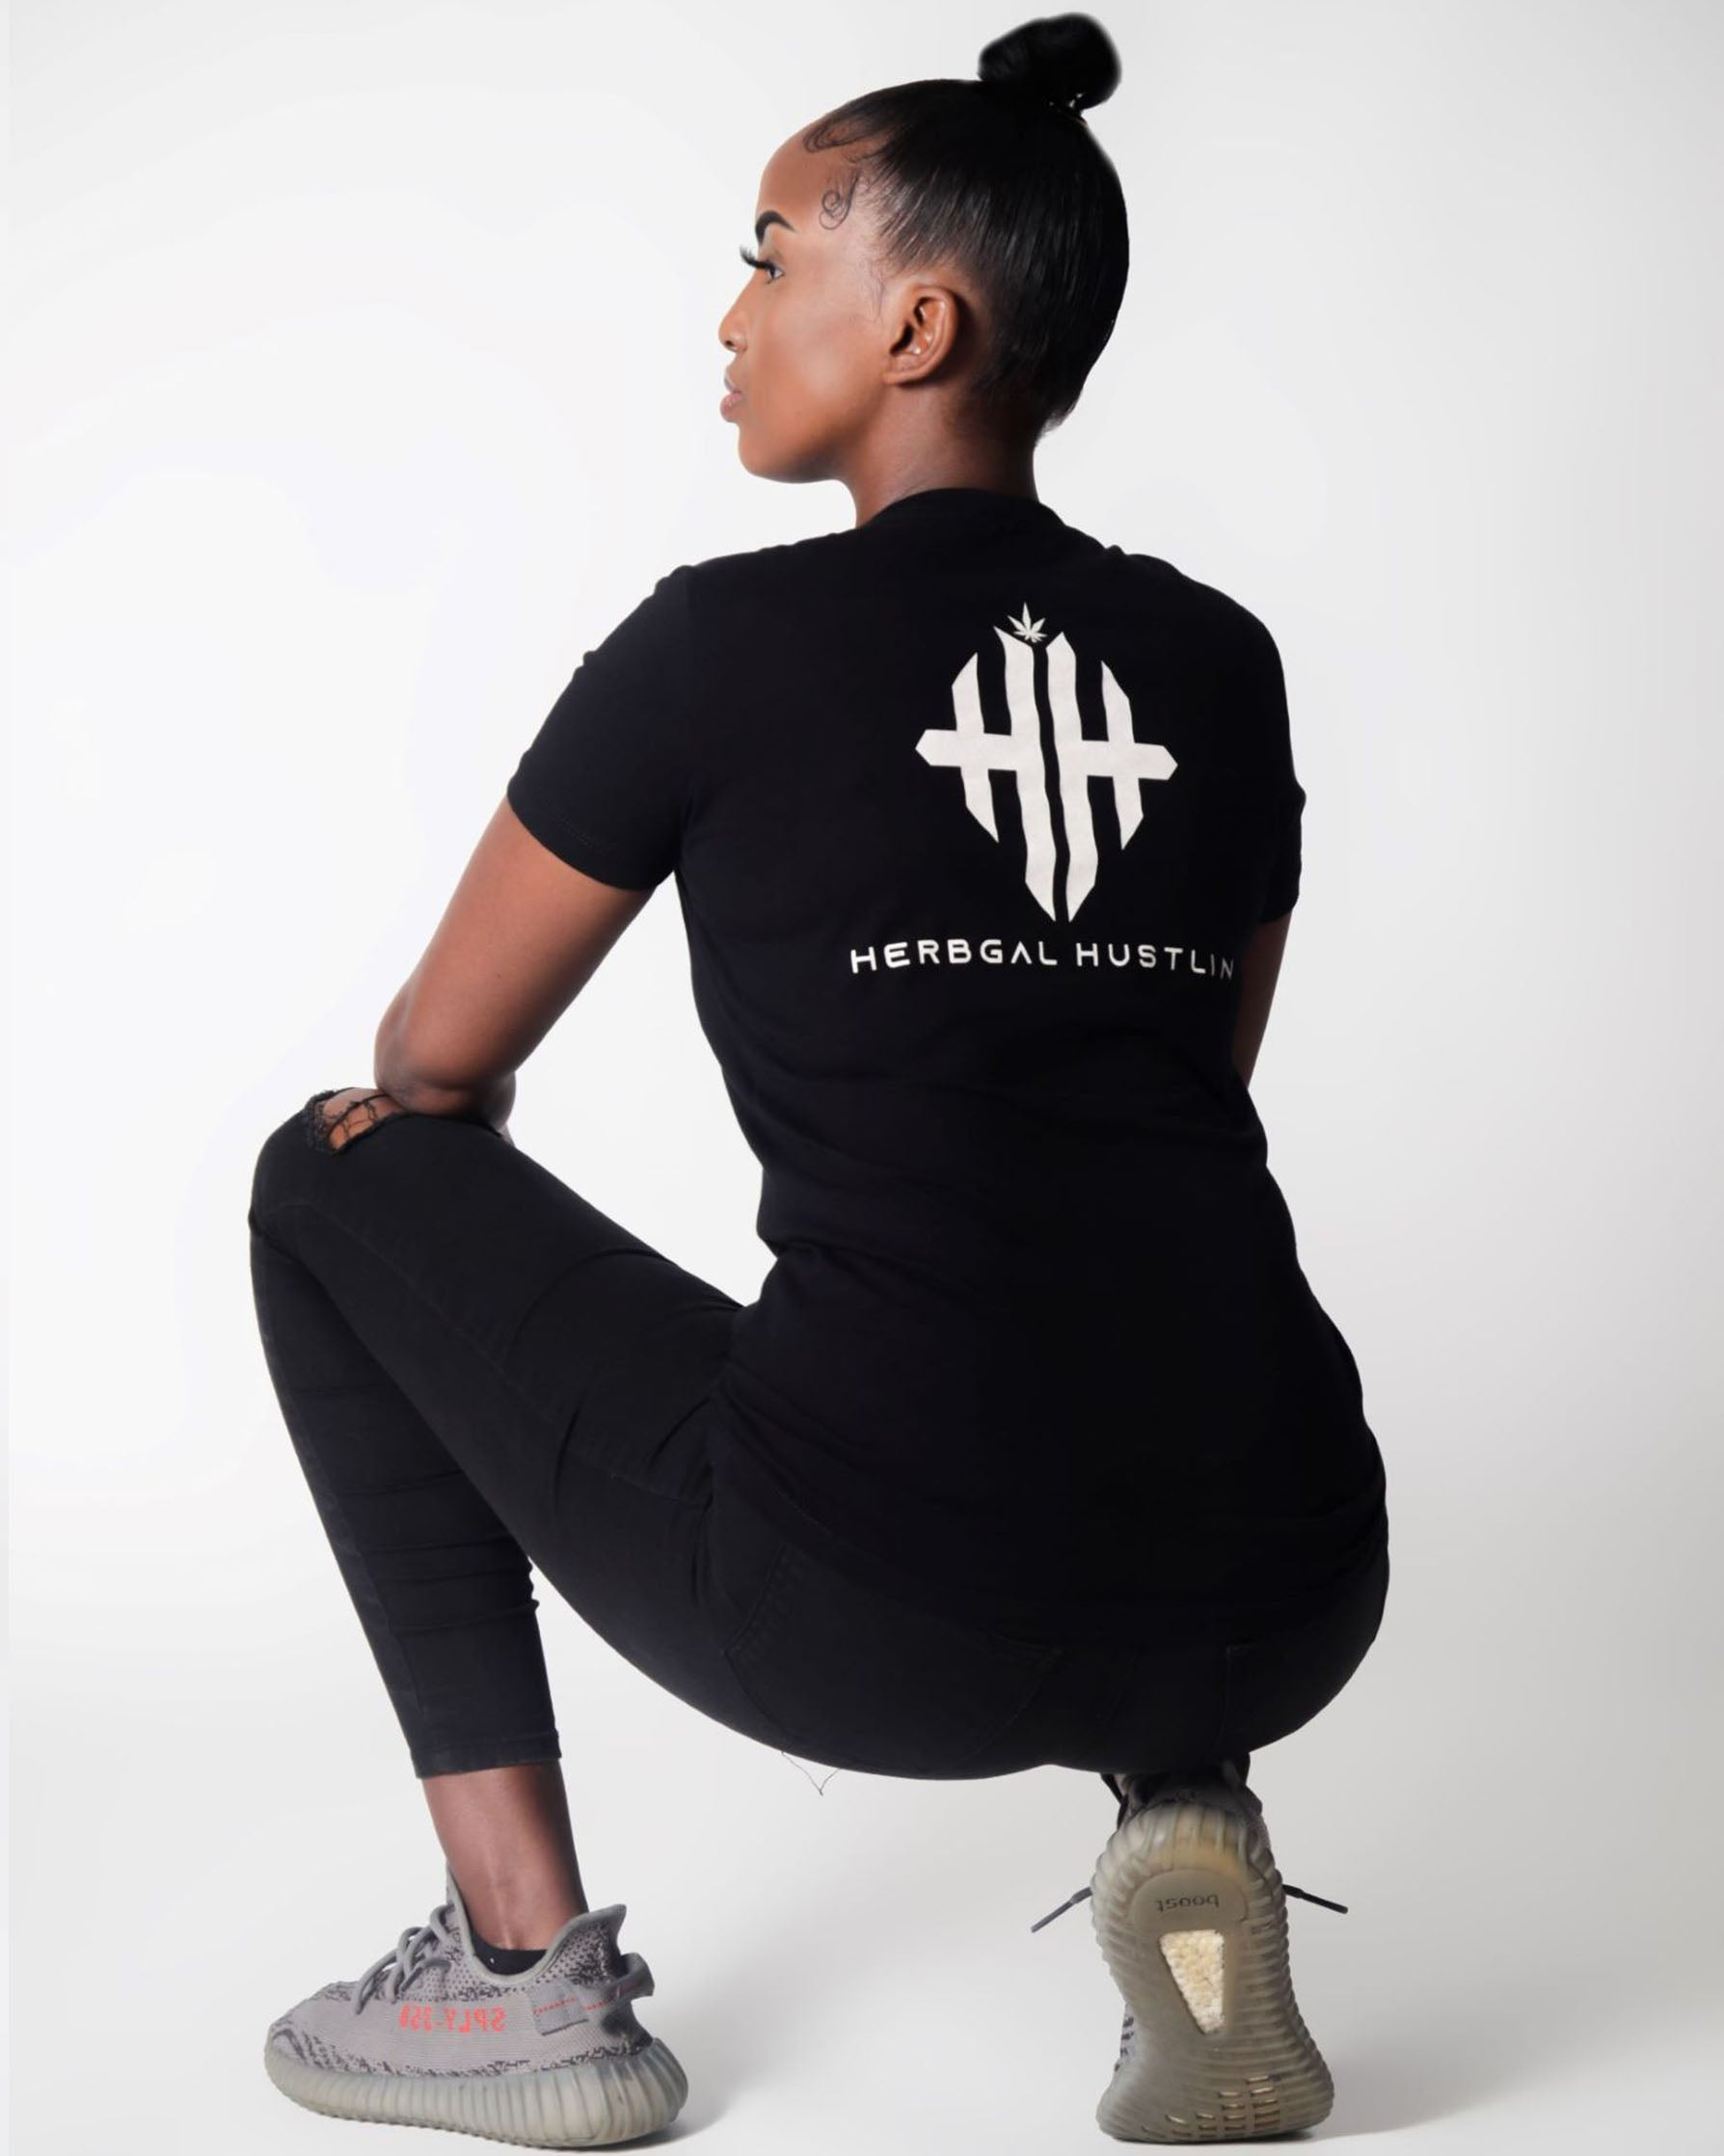 Herbgal Hustlin Monogram Fitted Ladies Tee - Black/White - Back